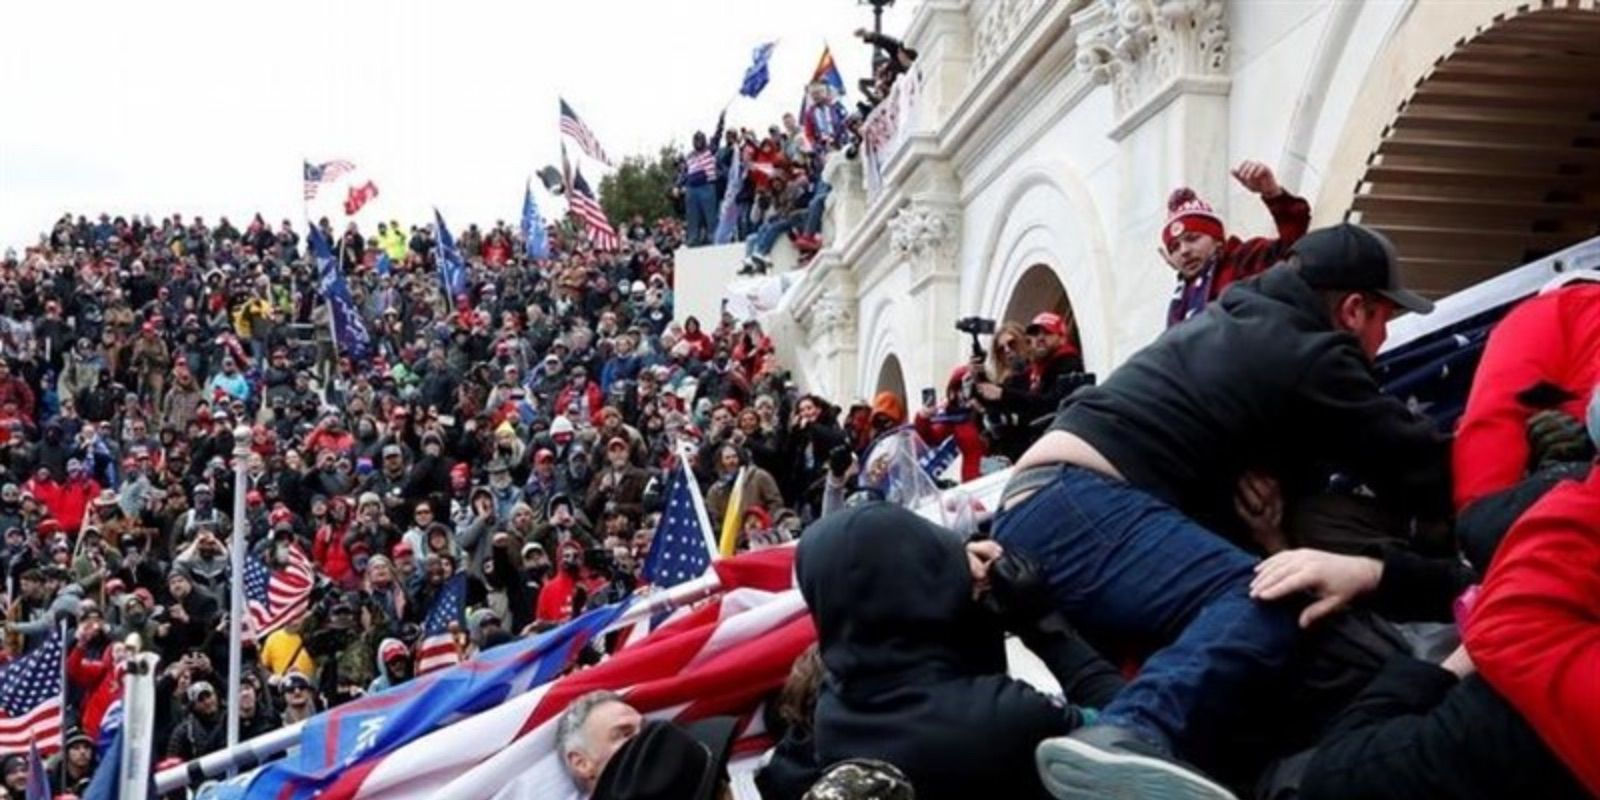 Capitol riot defendant requests trial be moved to home state of Texas